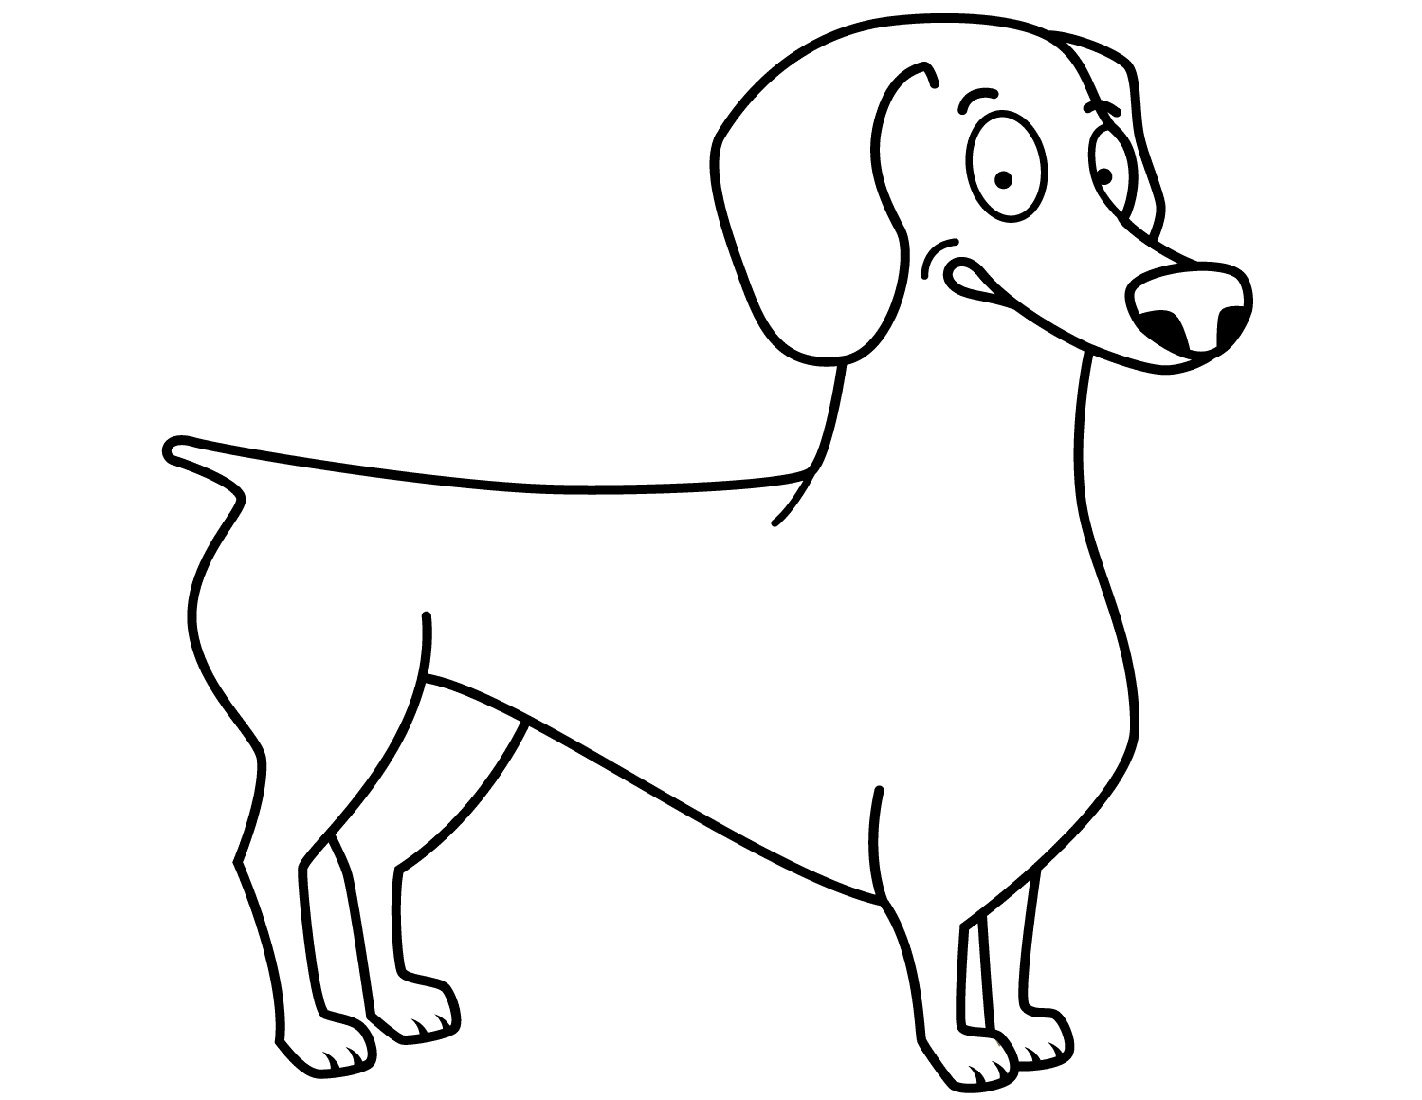 dachshund coloring pictures dachshund coloring pages at getcoloringscom free coloring pictures dachshund